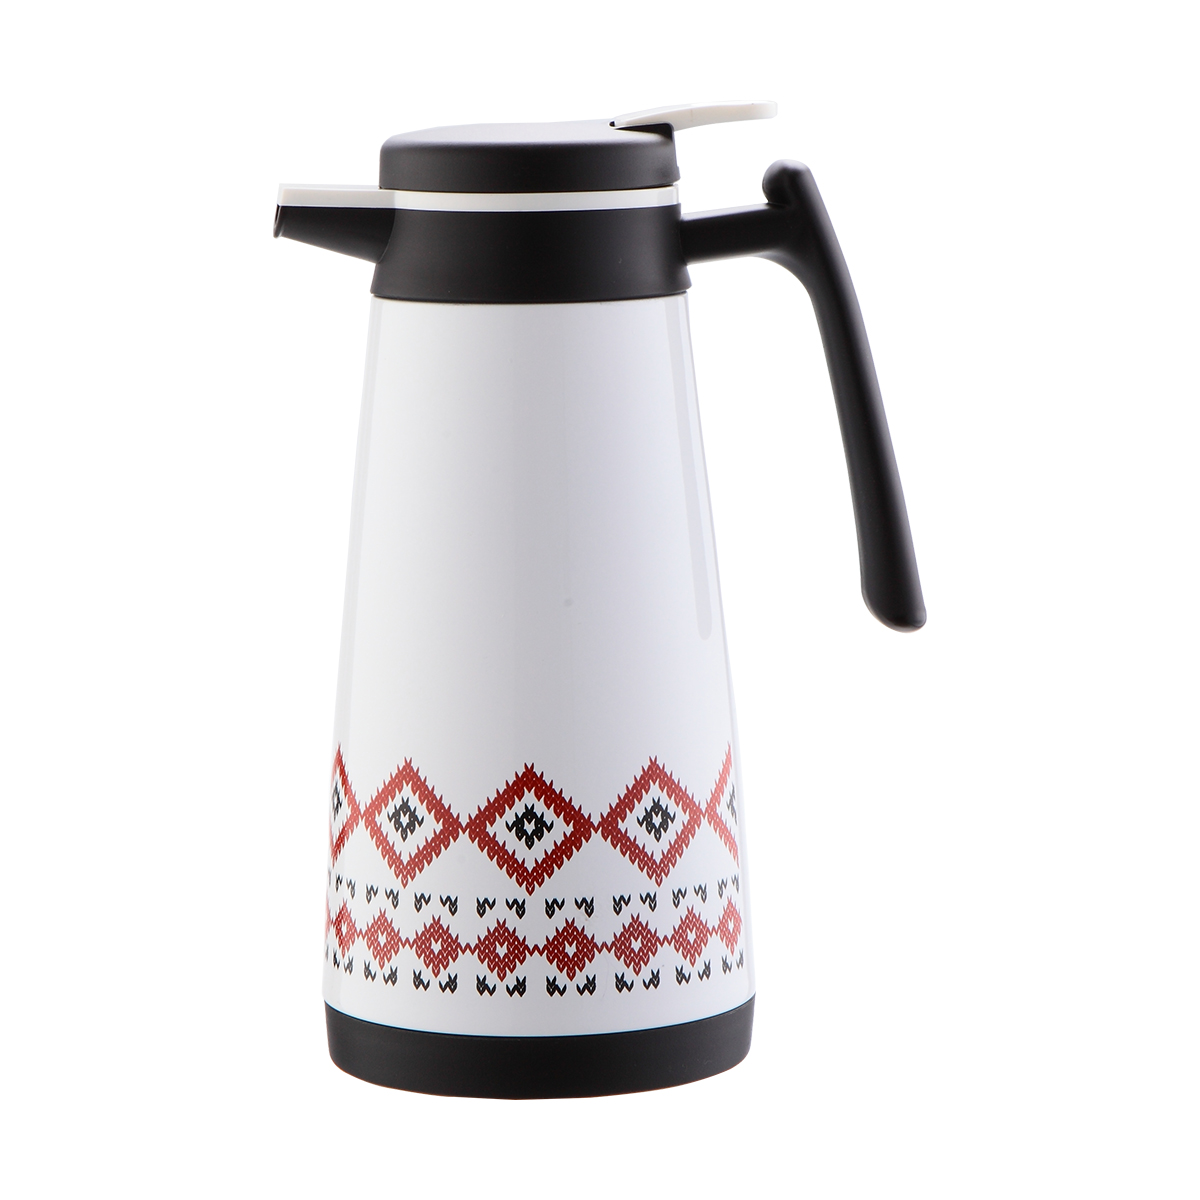 Coffee Pot NWY-YH1.6